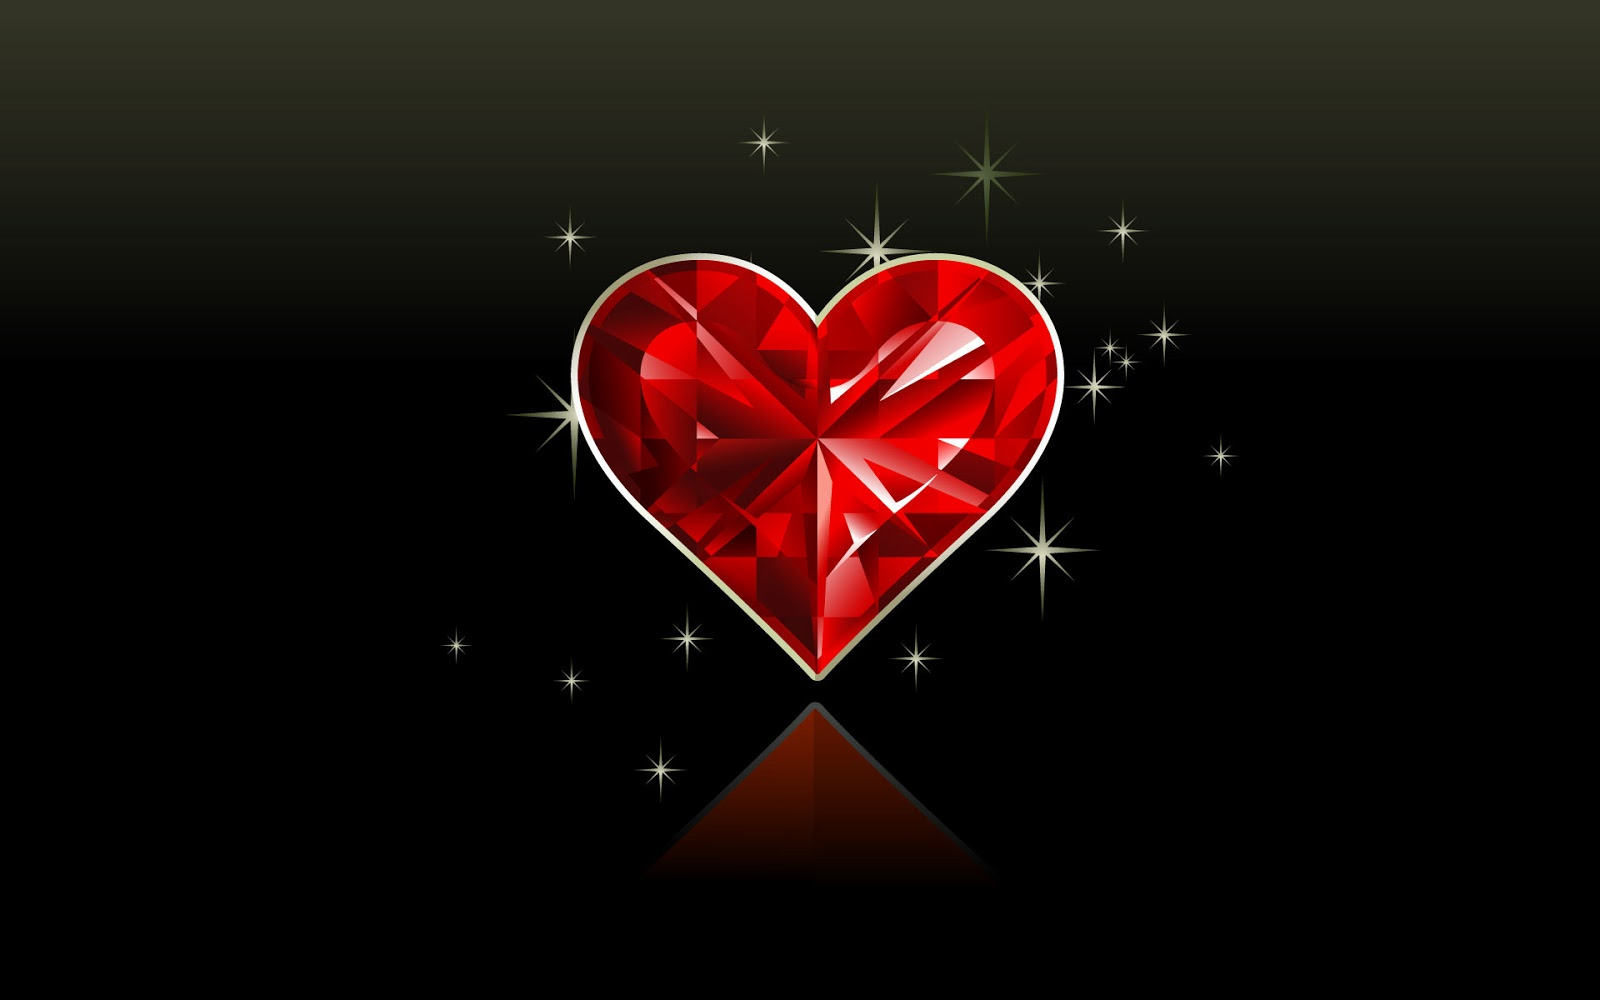 Heart love background, wallpaper hearts love Free Stock Photos Web